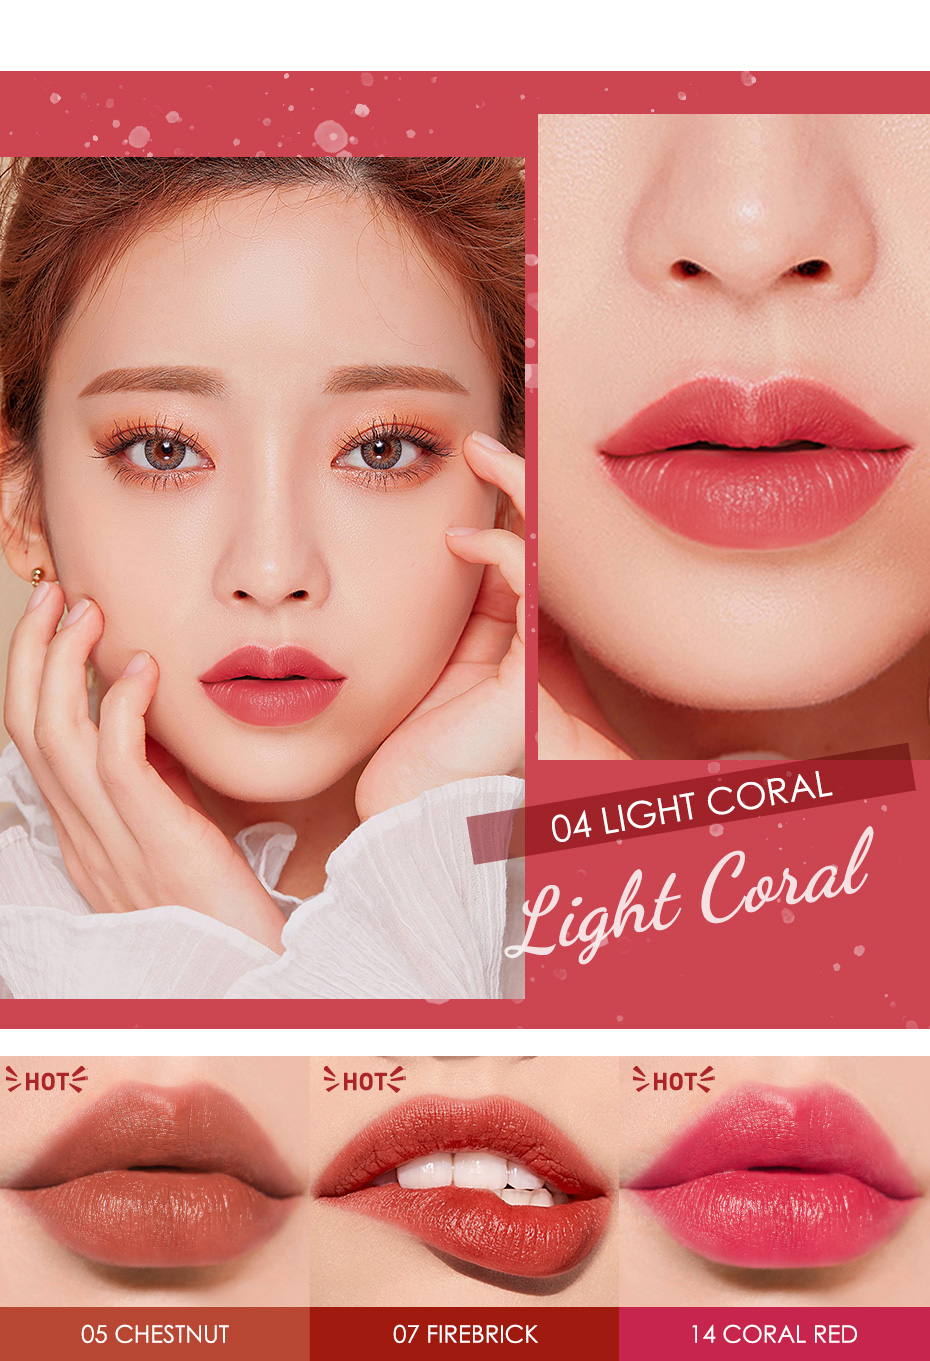 FOCALLURE Matte Lipstick Cosmetic Waterproof Long Lasting Pigmented Tint Sexy Red Velvet Lips Professional Makeup for Women